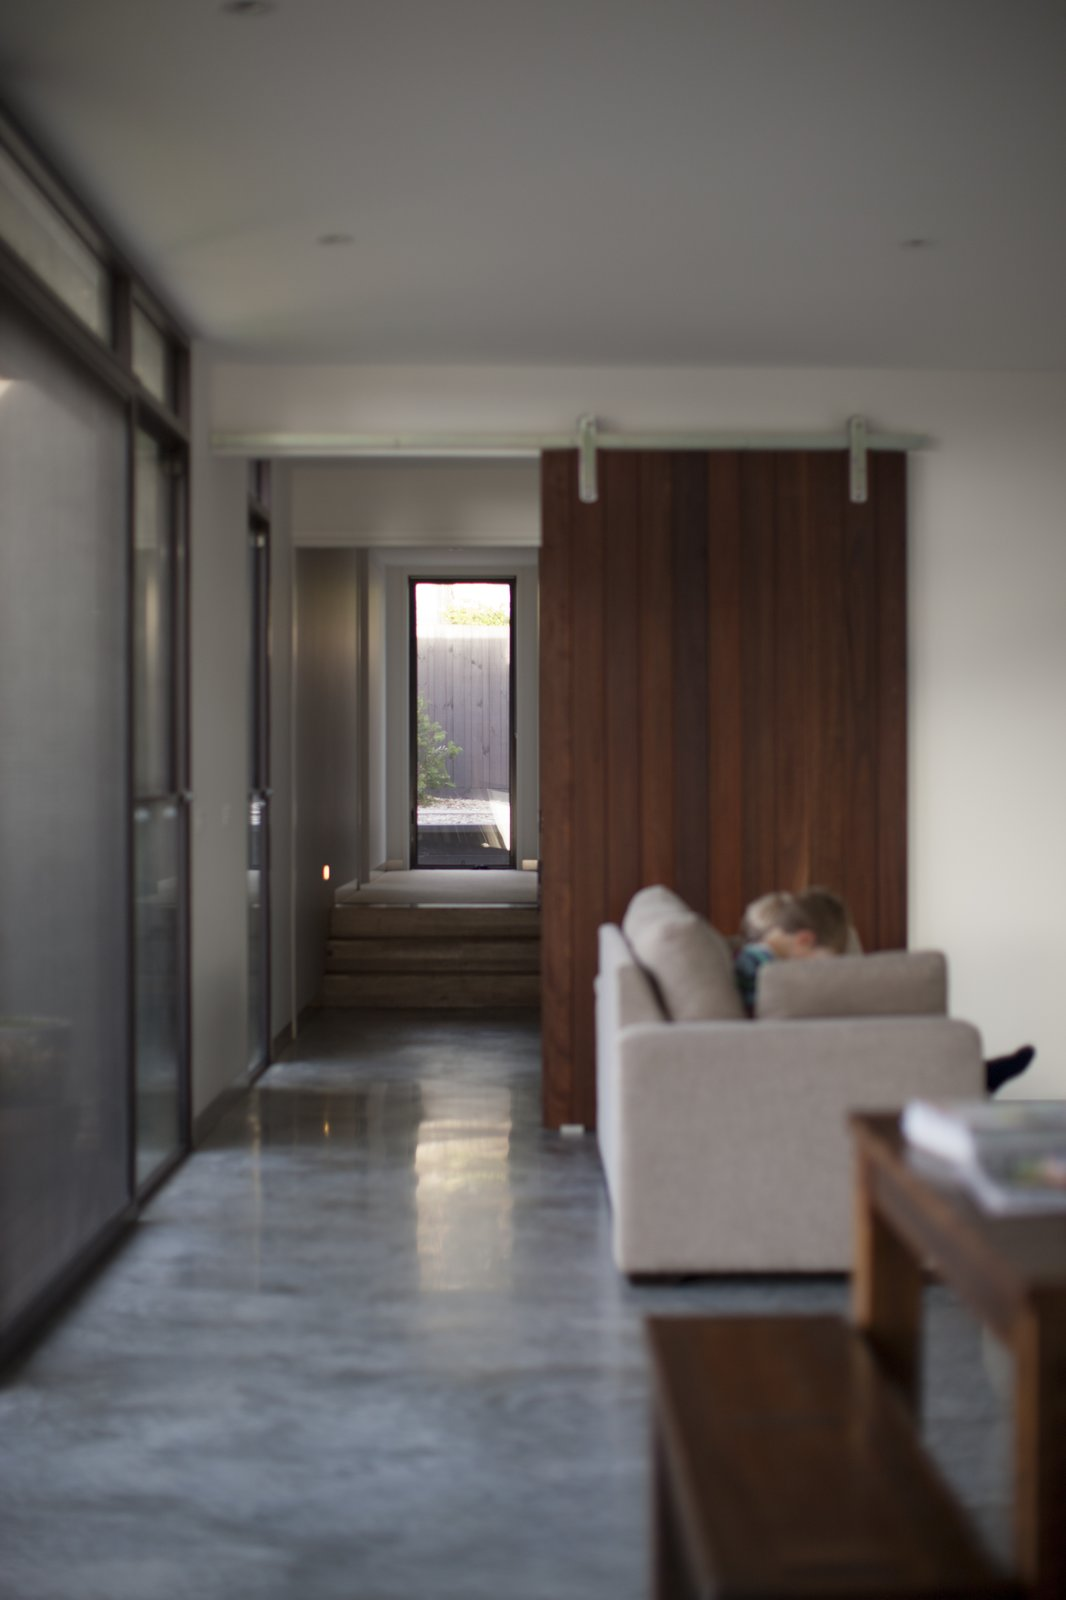 Feature Internal Sliding Door & Polished Concrete Floors  Pod Residence by Bespoke Architects